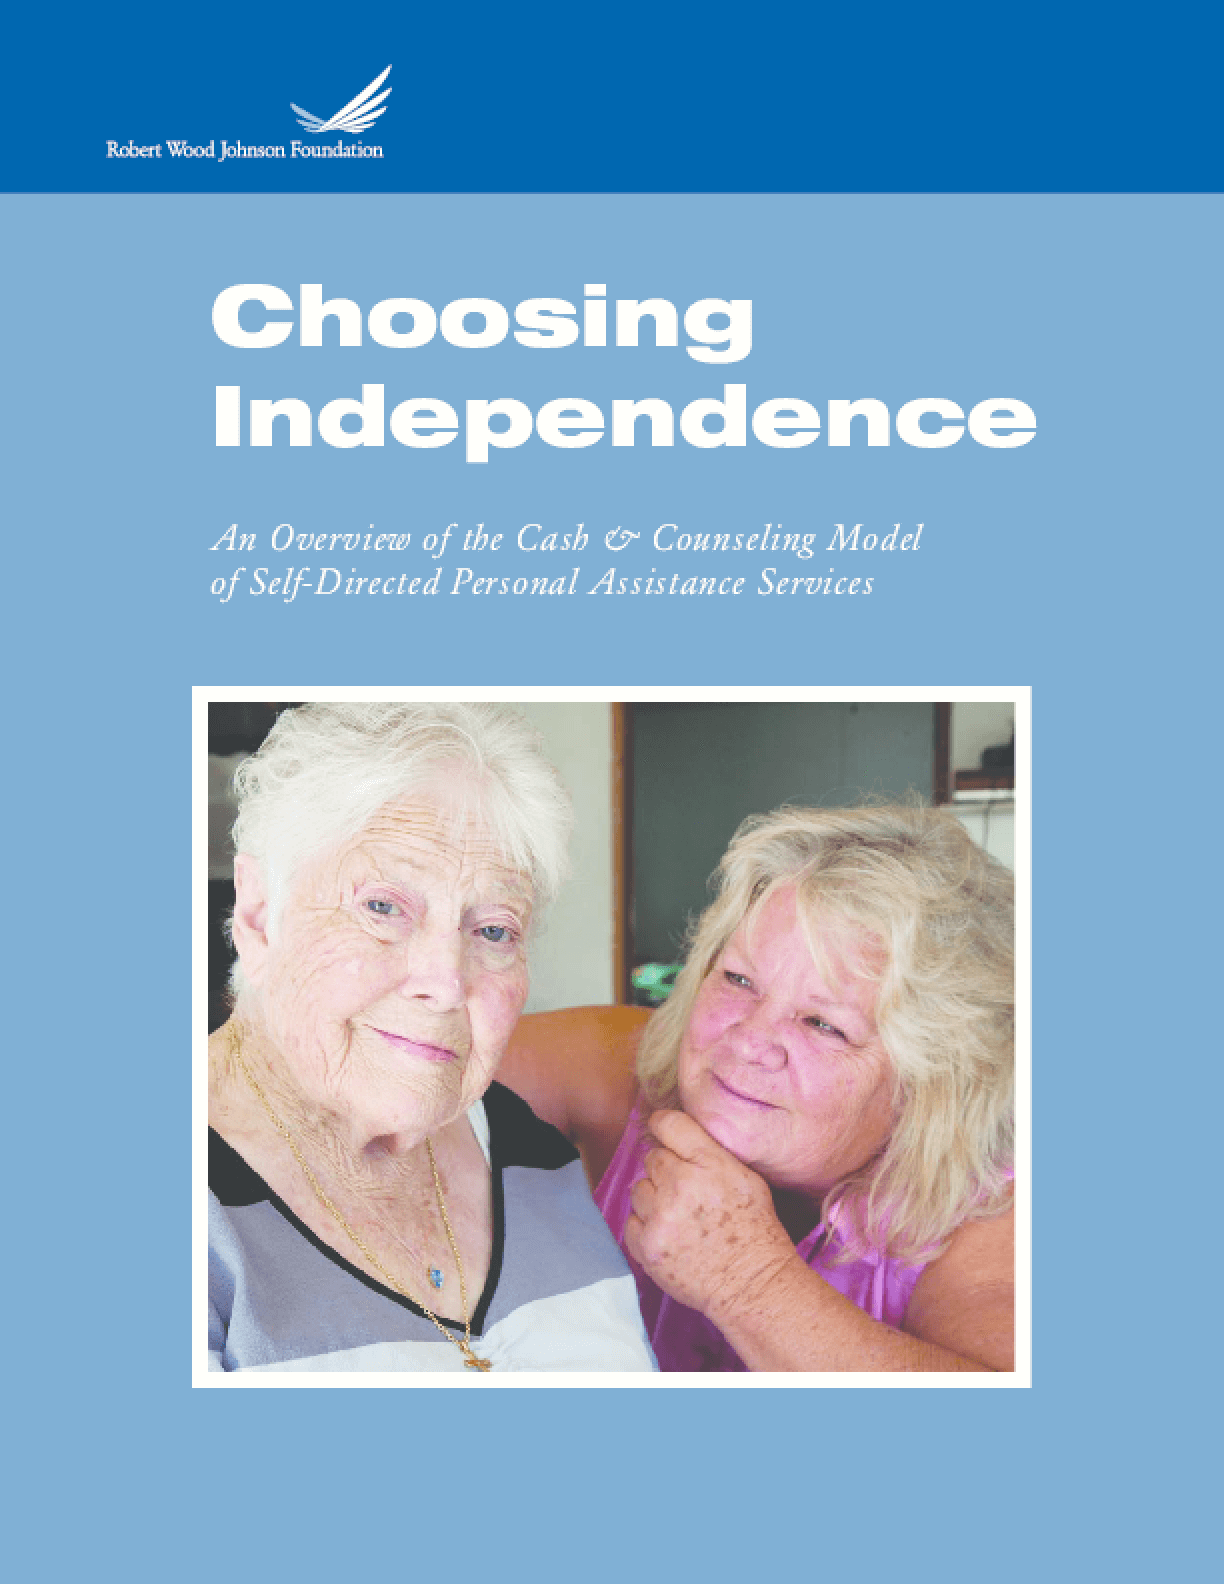 Choosing Independence: An Overview of the Cash & Counseling Model